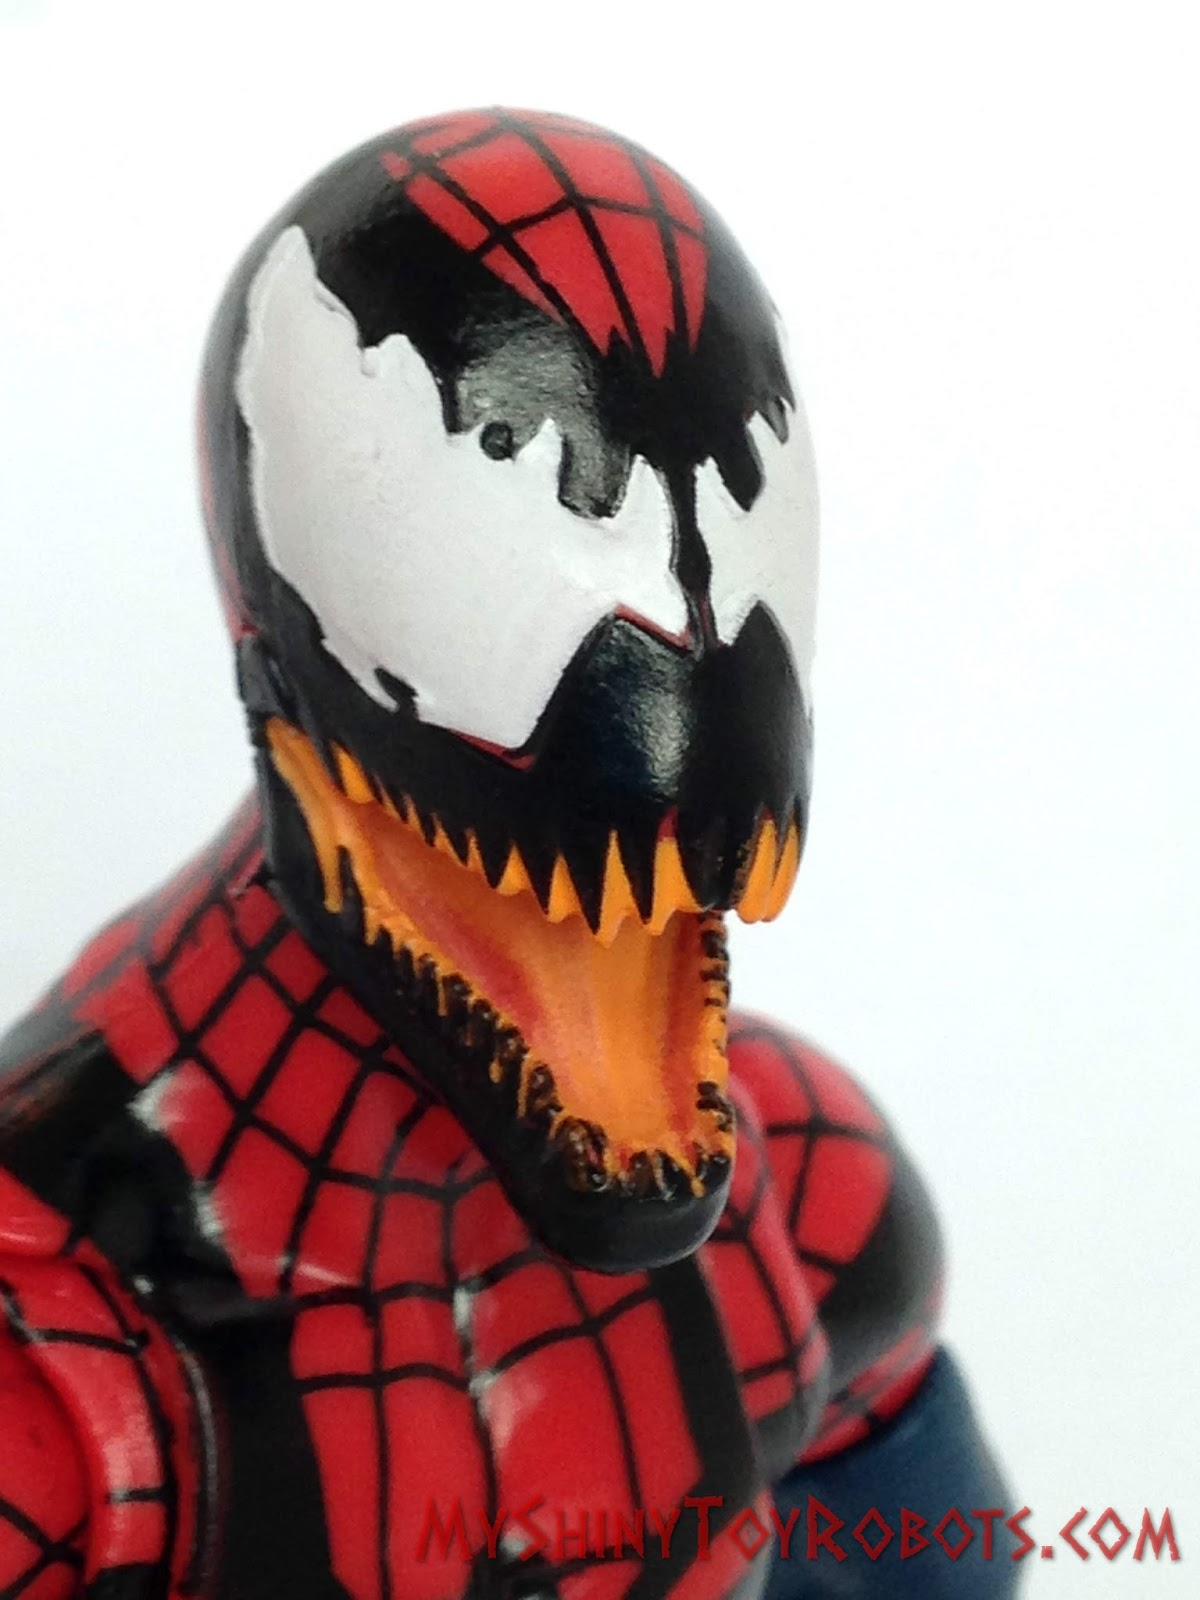 My shiny toy robots toybox review marvel legends spider - Spider carnage ben reilly ...